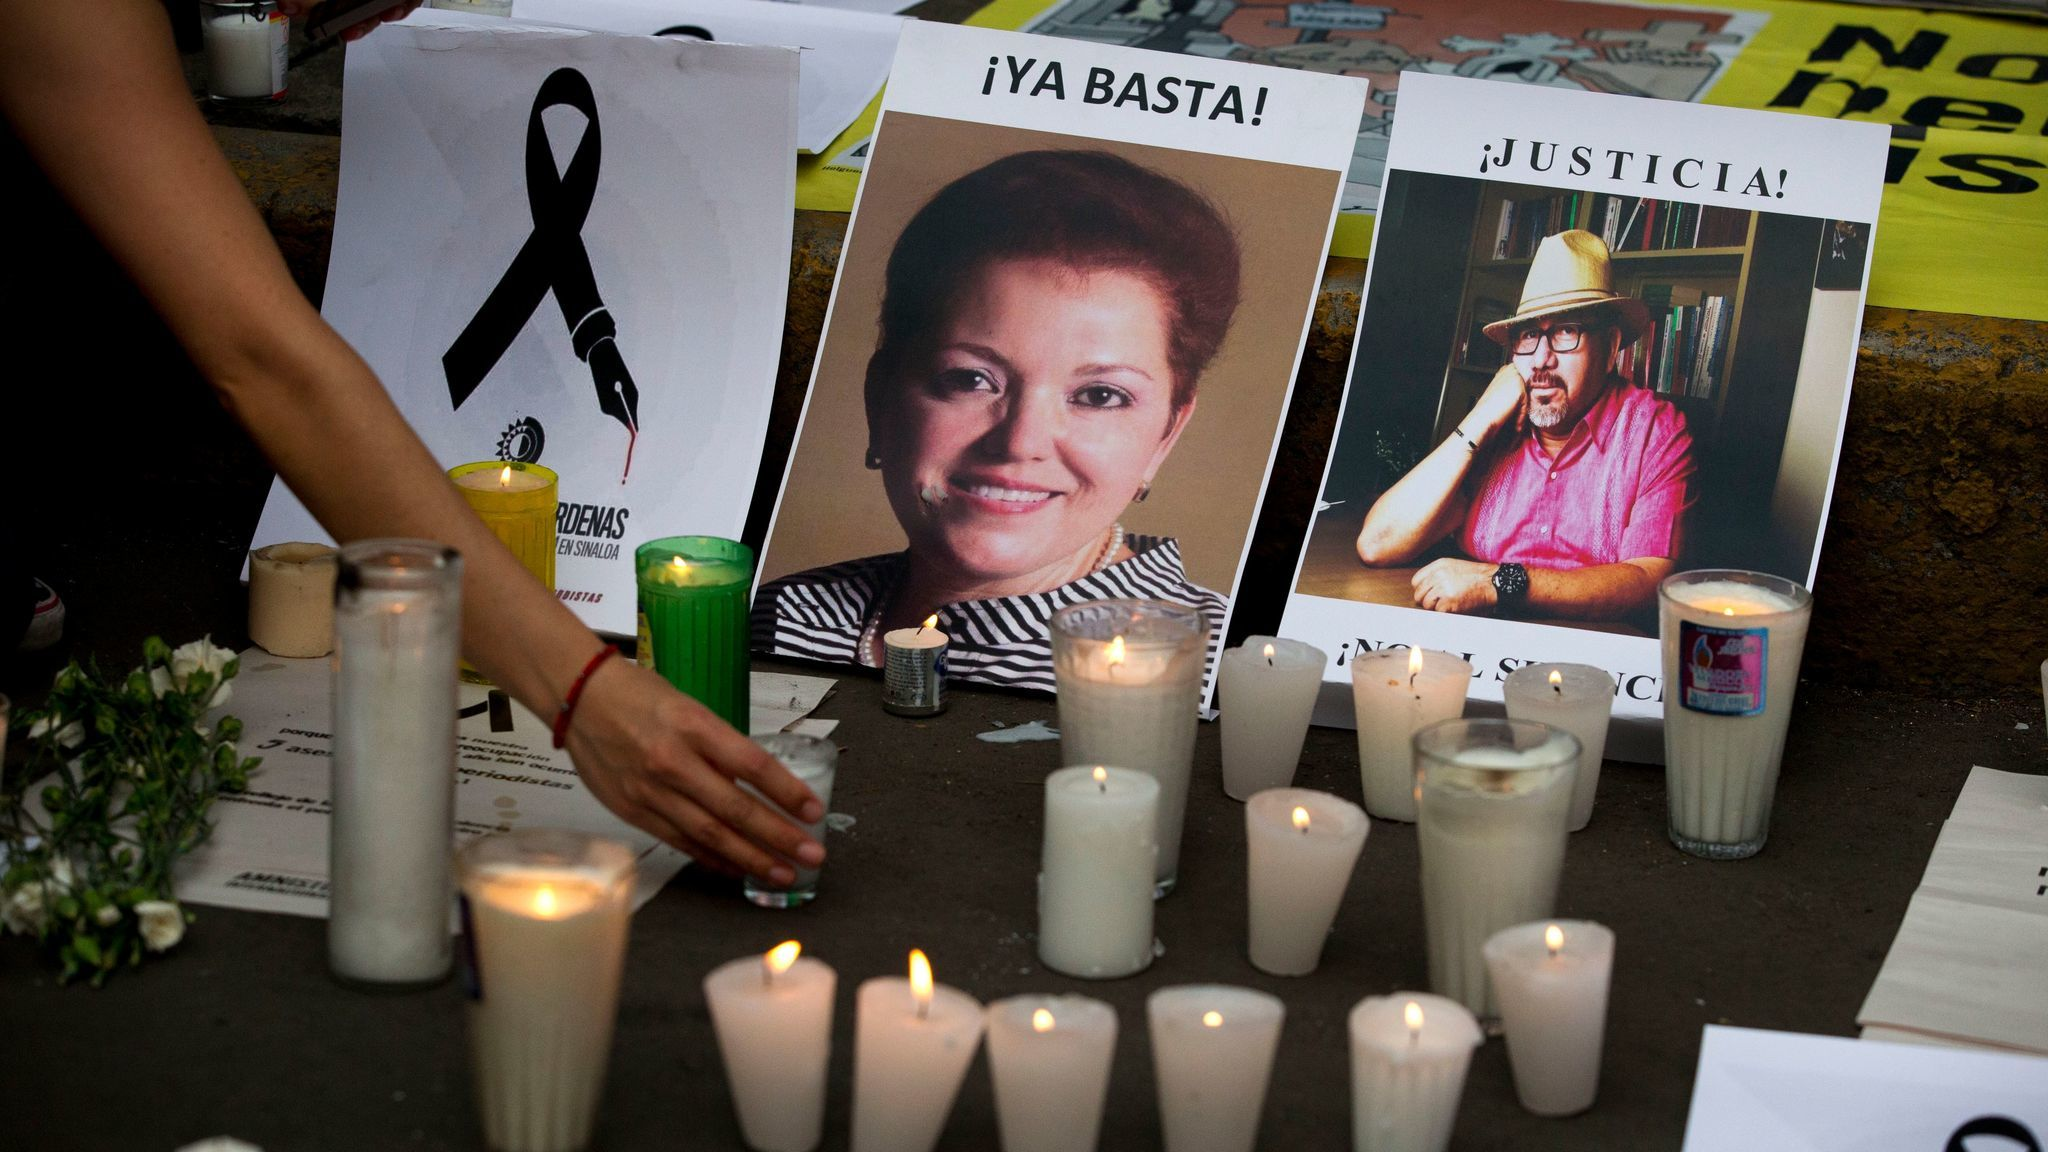 FILE - In this May 16, 2017 file photo, a woman places a candle in front of pictures of murdered jou